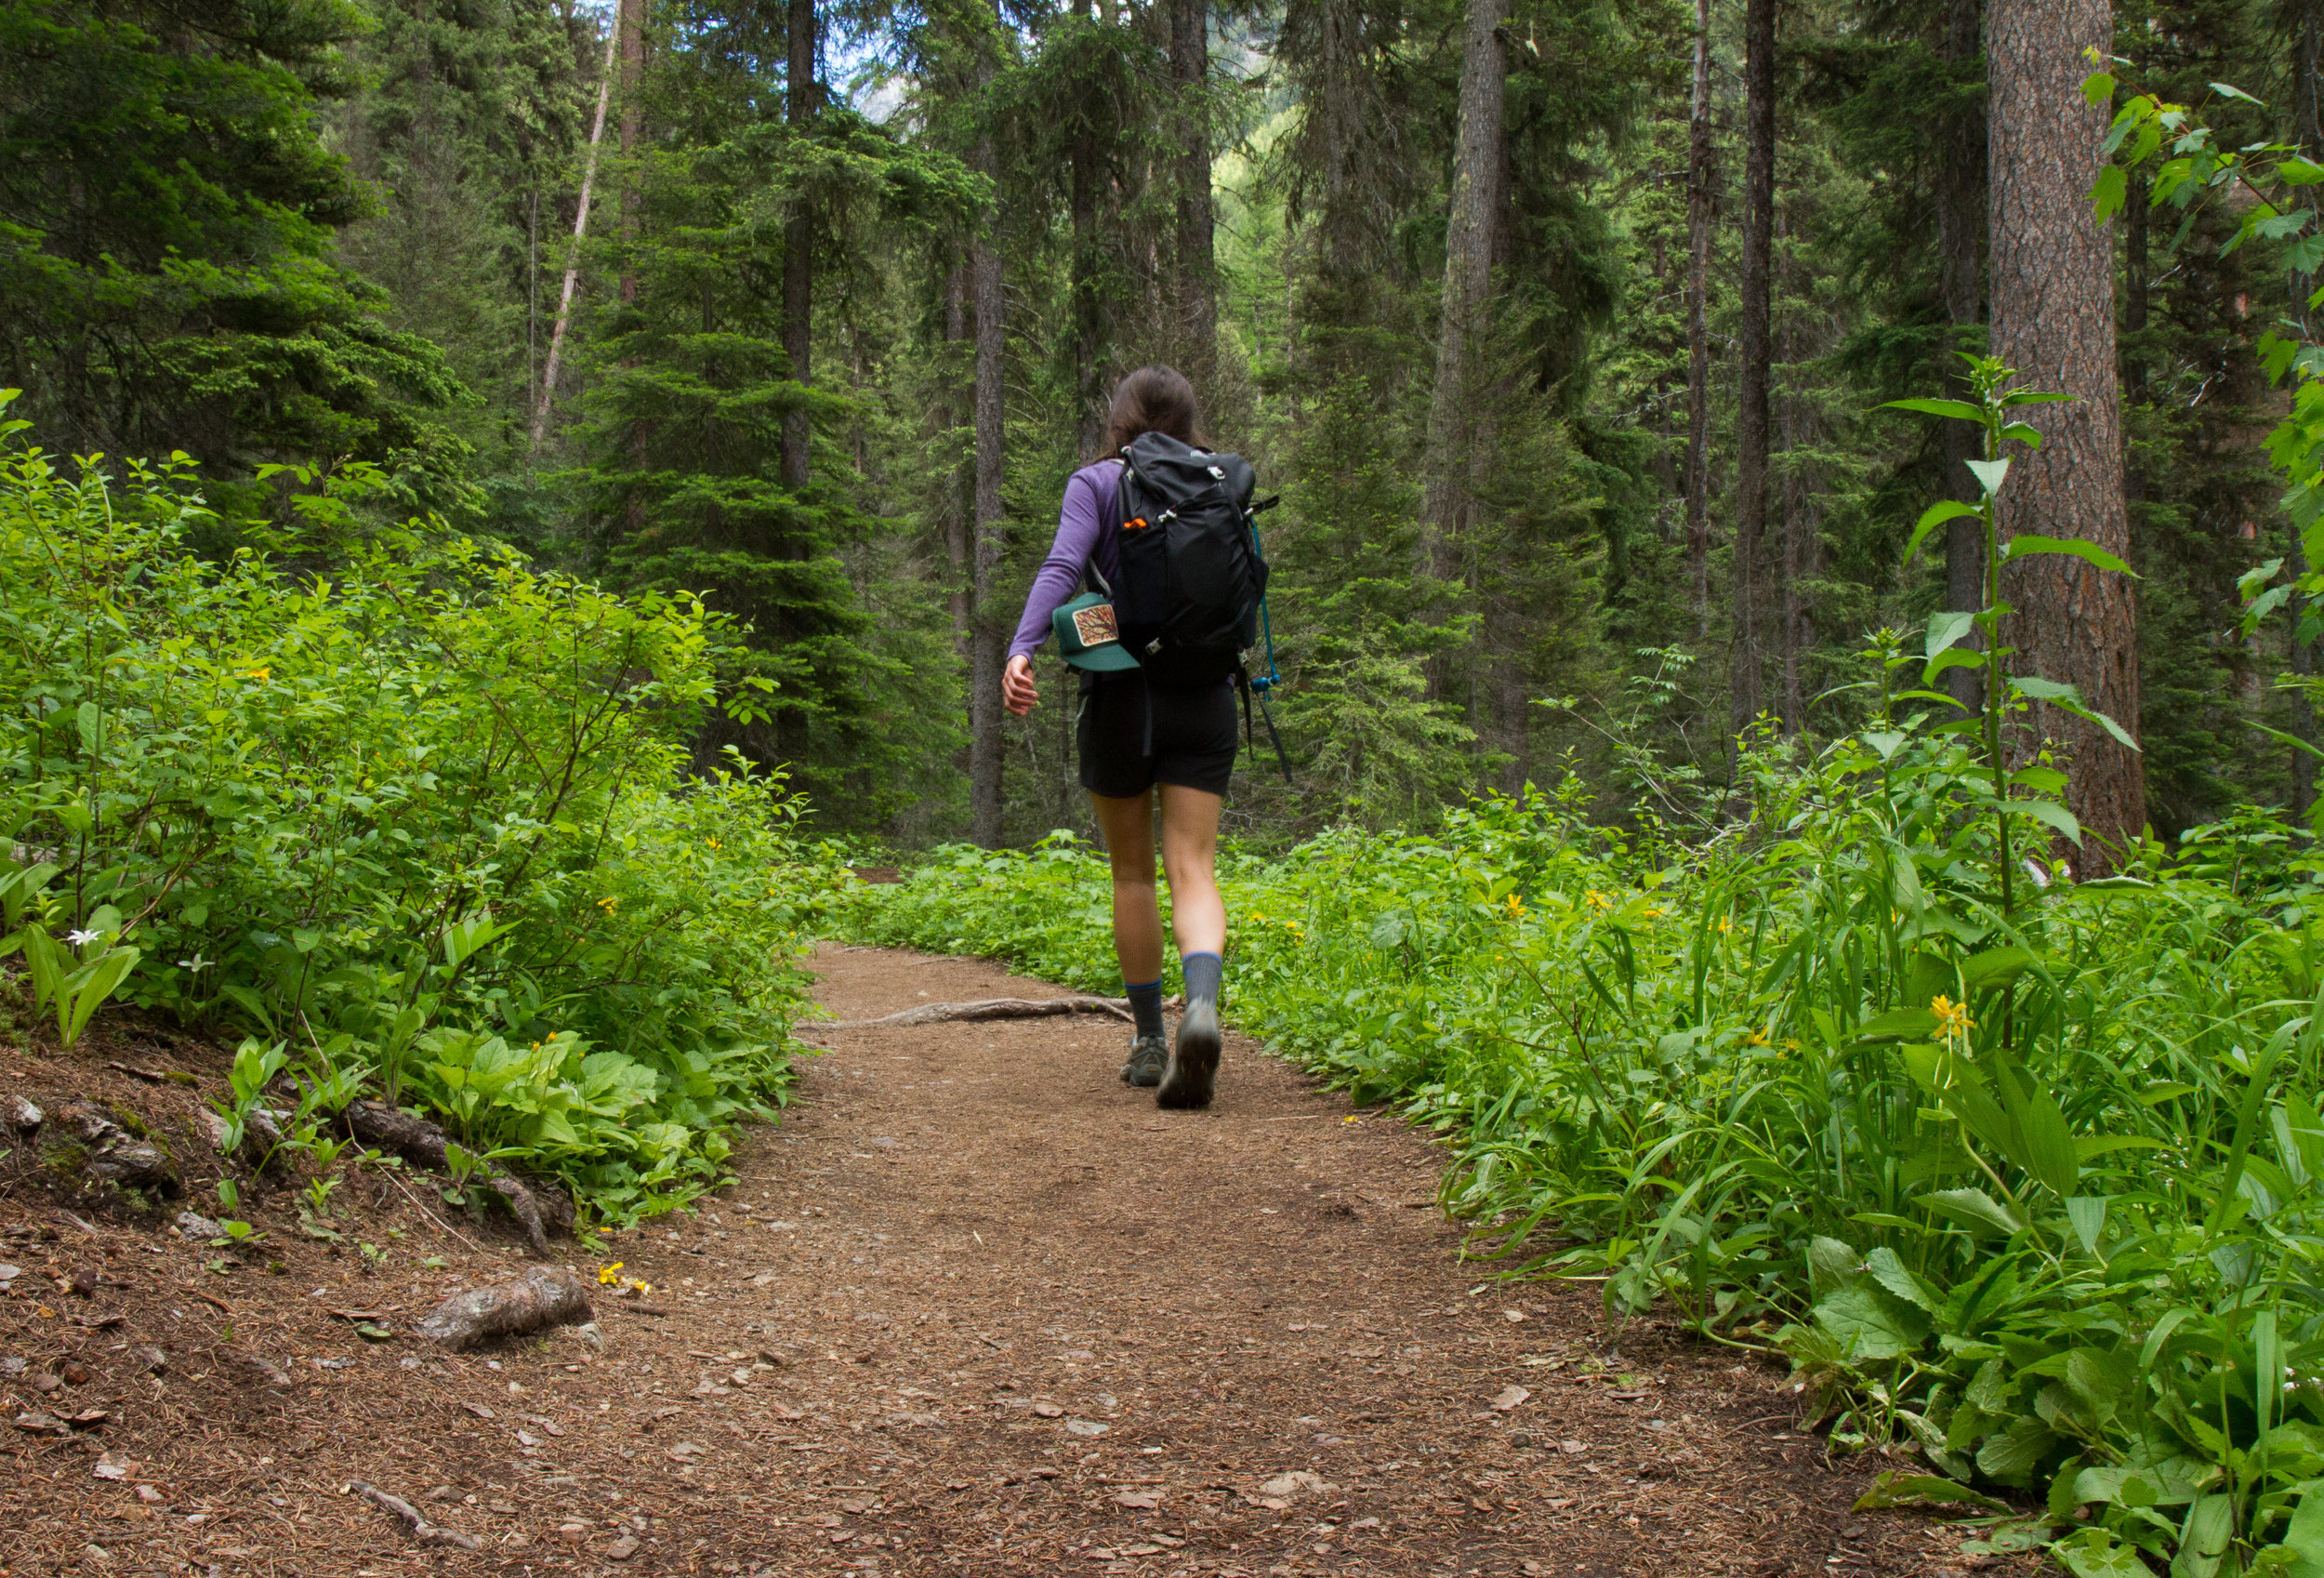 We work to create new recreational opportunities in our region, including a plan in the Colville National Forest that will benefit hikers, bikers, horseback riders, and skiers.